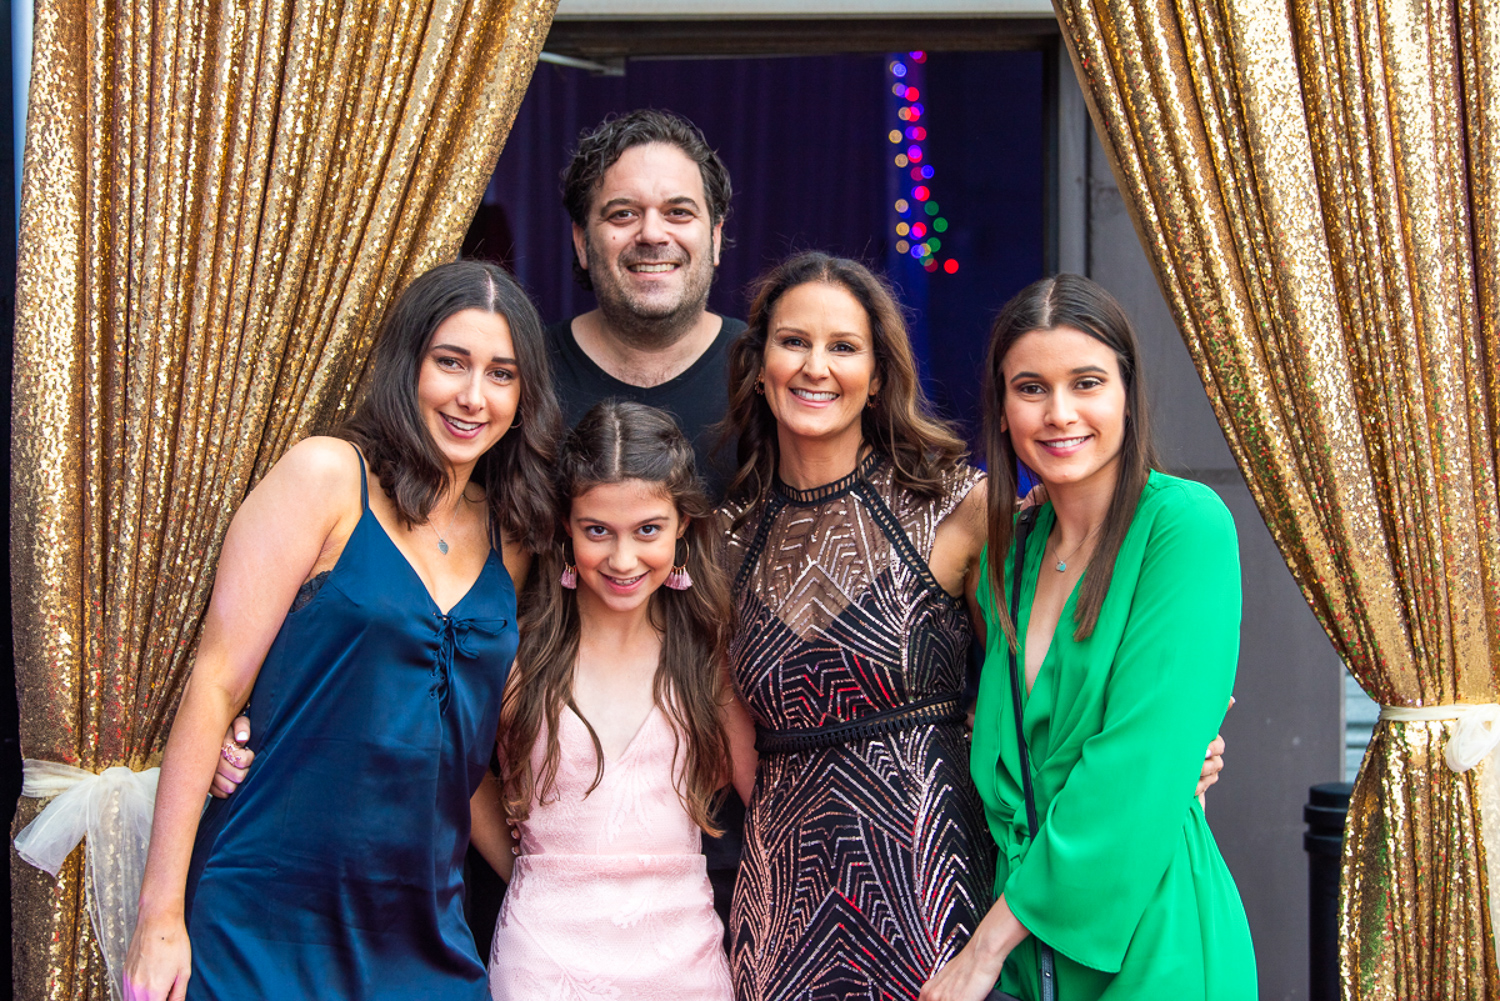 Jenna's Bat Mitzvah family photo in front of gold sequin entrance draping hire melbourne